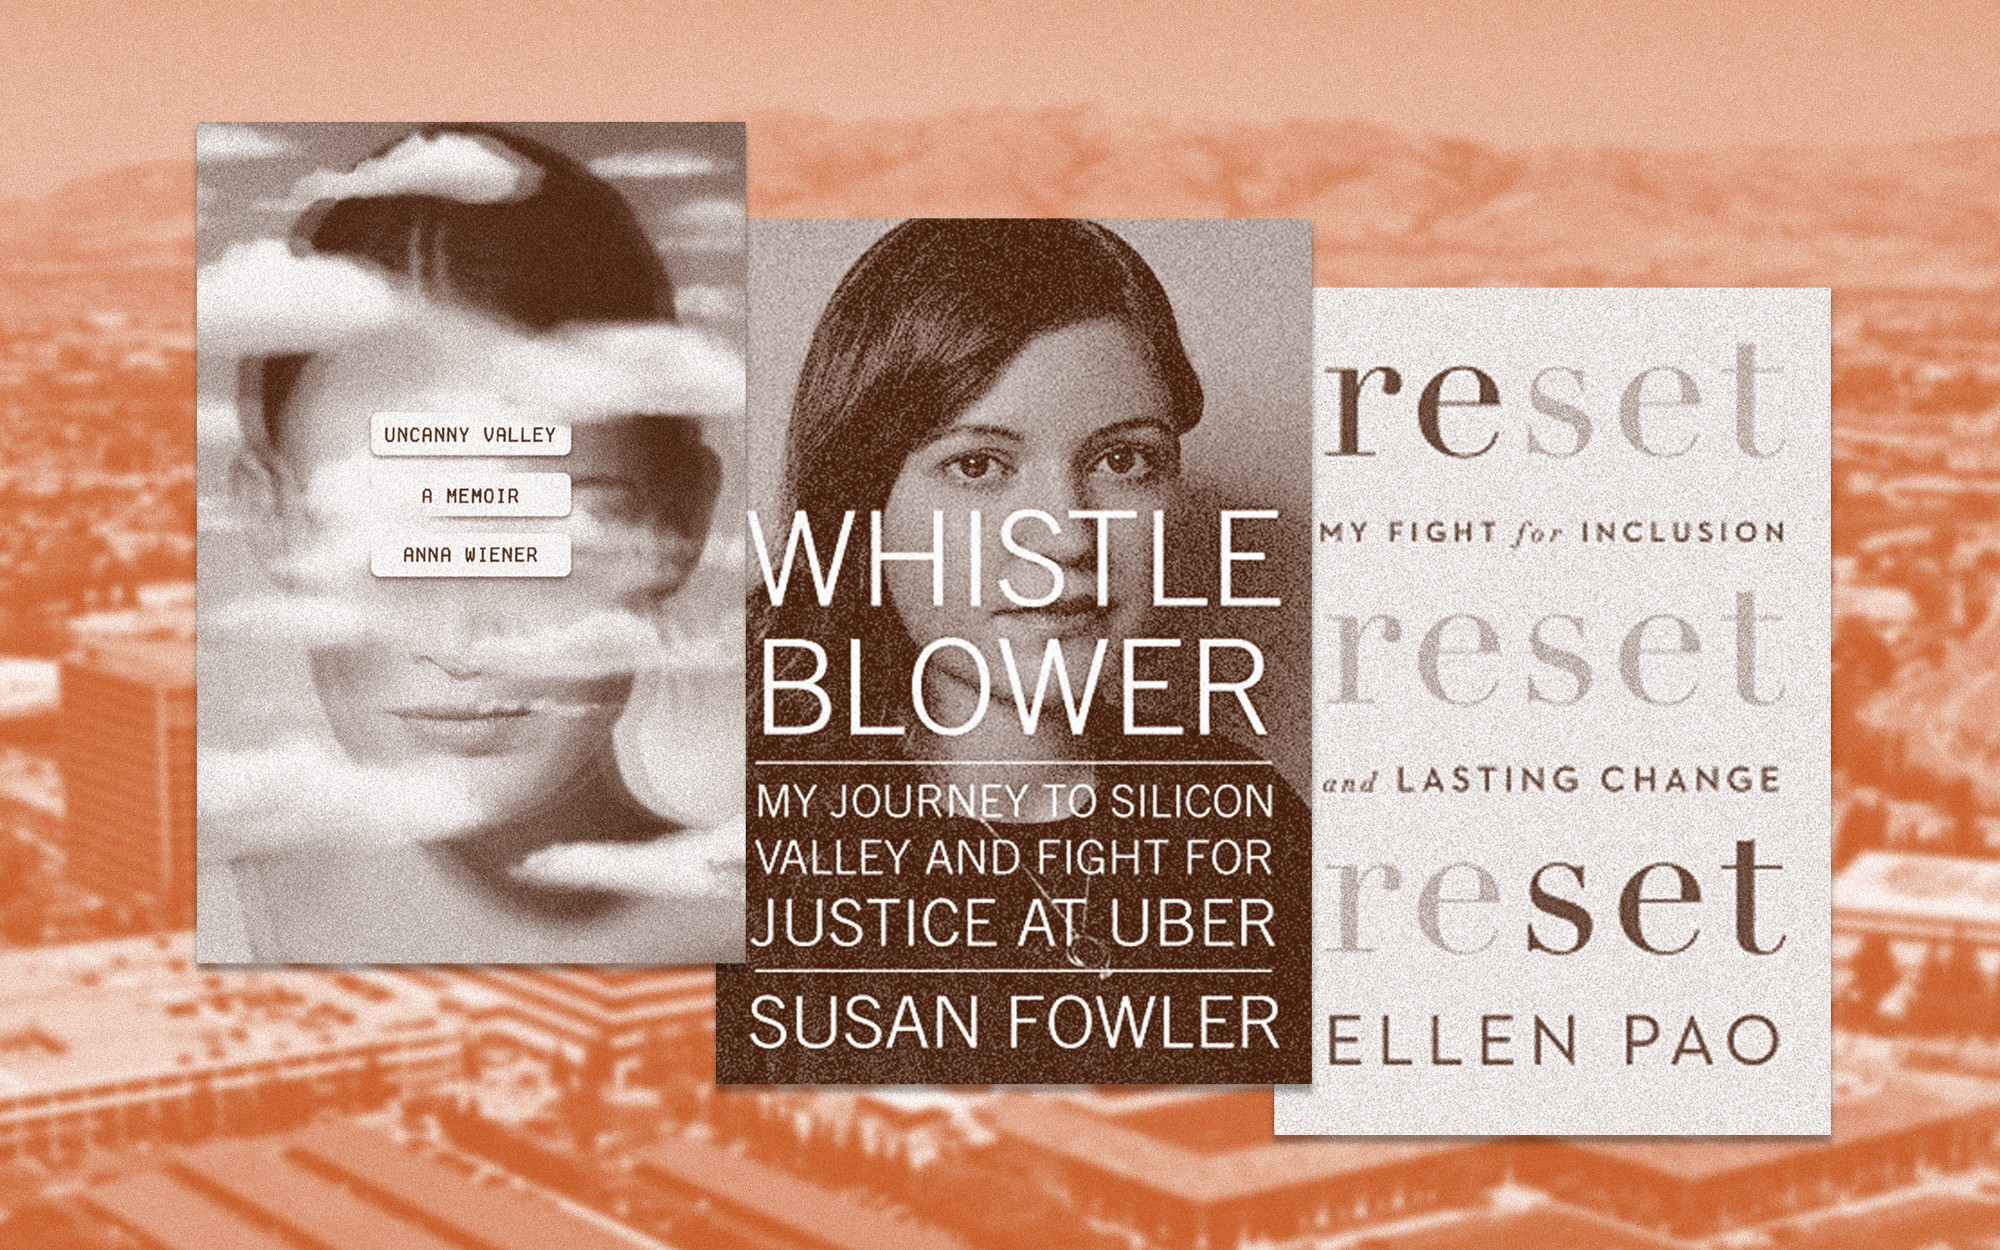 """The book covers of """"Uncanny Valley,"""" """"Whistle Blower,"""" and """"Reset"""" are featured against Silicon Valley cityscape background."""